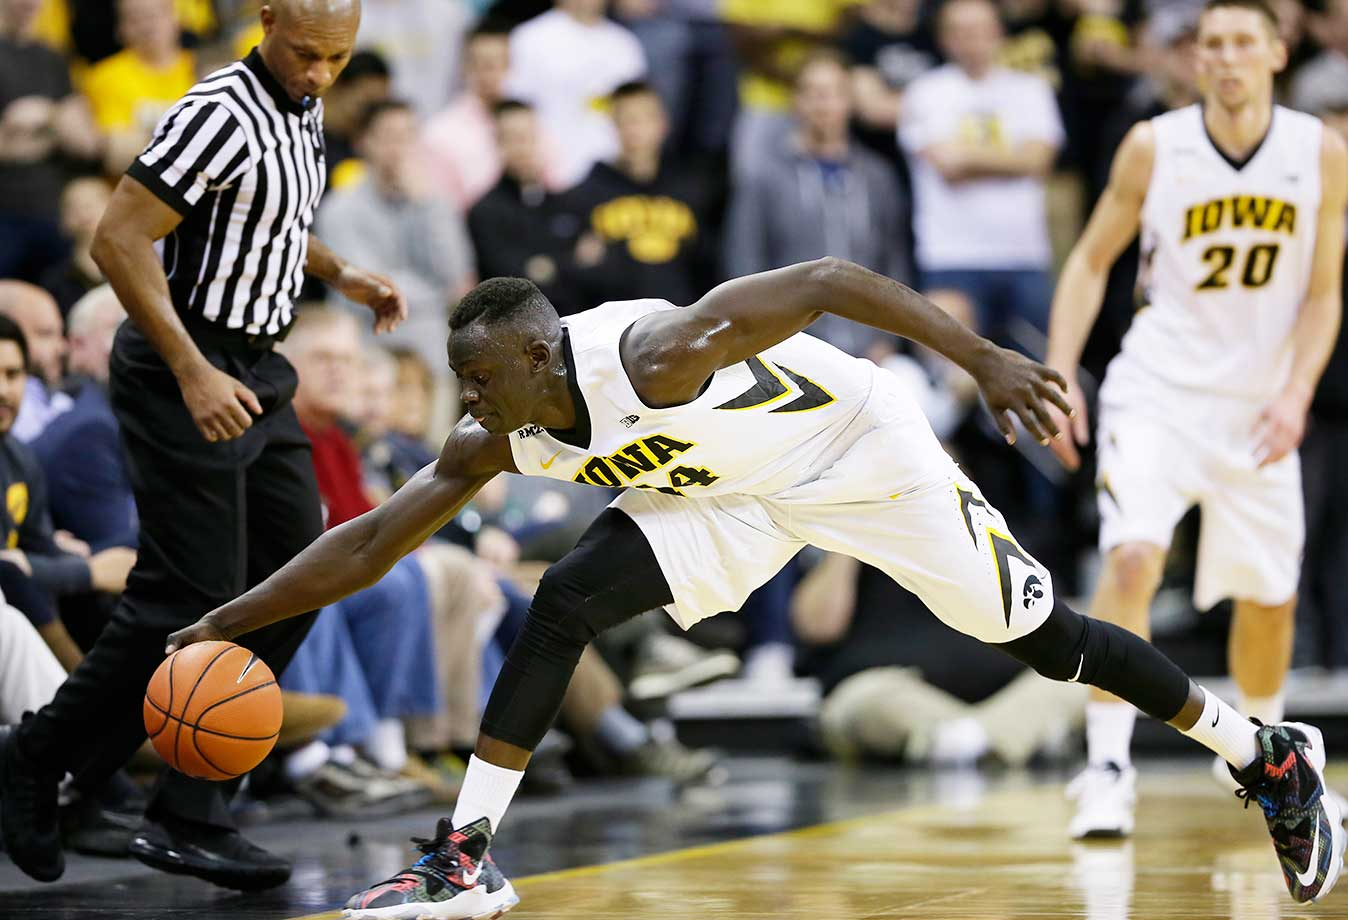 Iowa guard Peter Jok saves the ball from going out of bounds against Penn Statein Iowa City, Iowa.